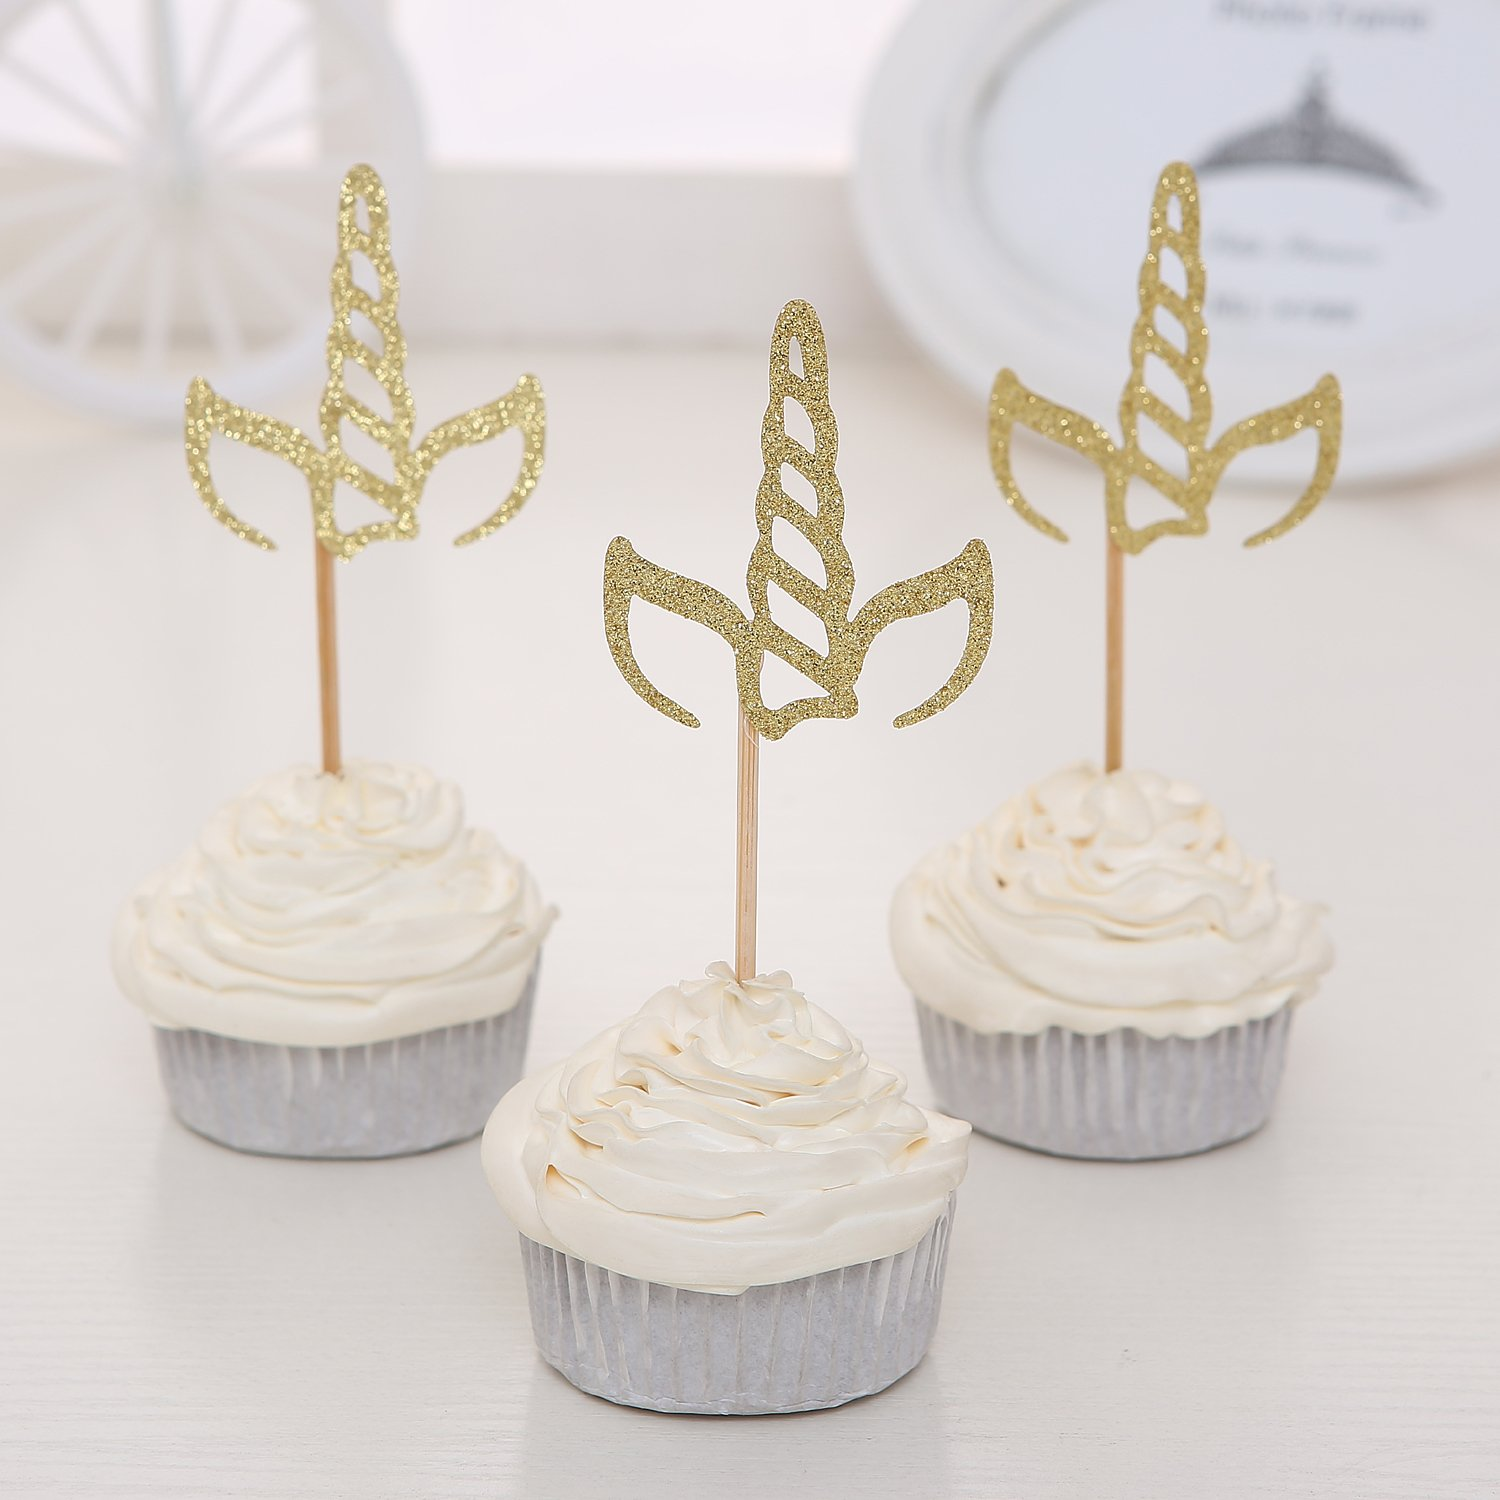 Giuffi Set of 24 Golden Glitter Unicorn Horn Theme Cupcake Toppers Kid's Party Baby Shower Decors - by